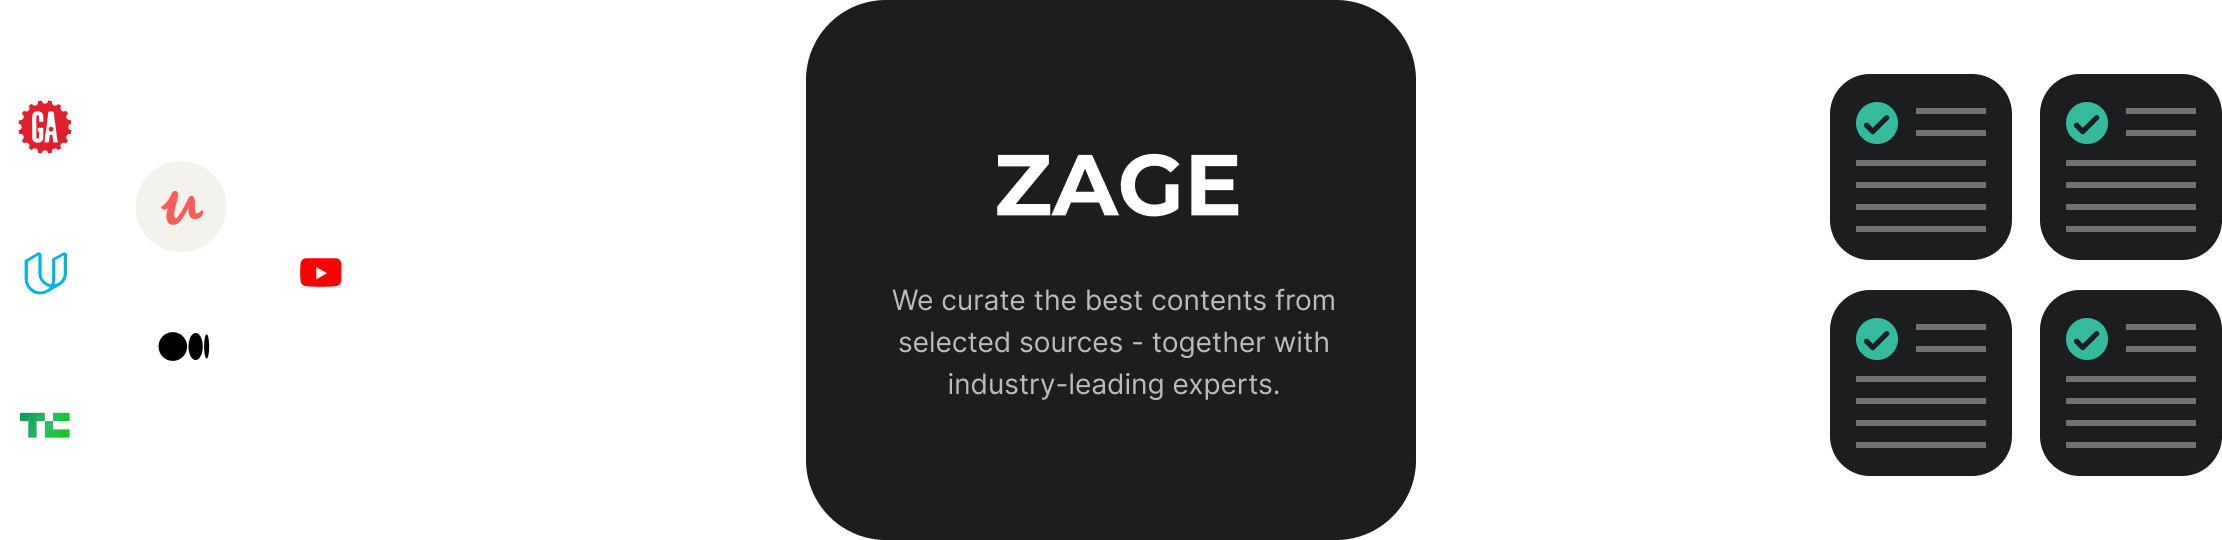 The ZAGE curation process: Together with industry professionals, we curate contents from selected sources. From courses, articles, podcasts, videos, and books.